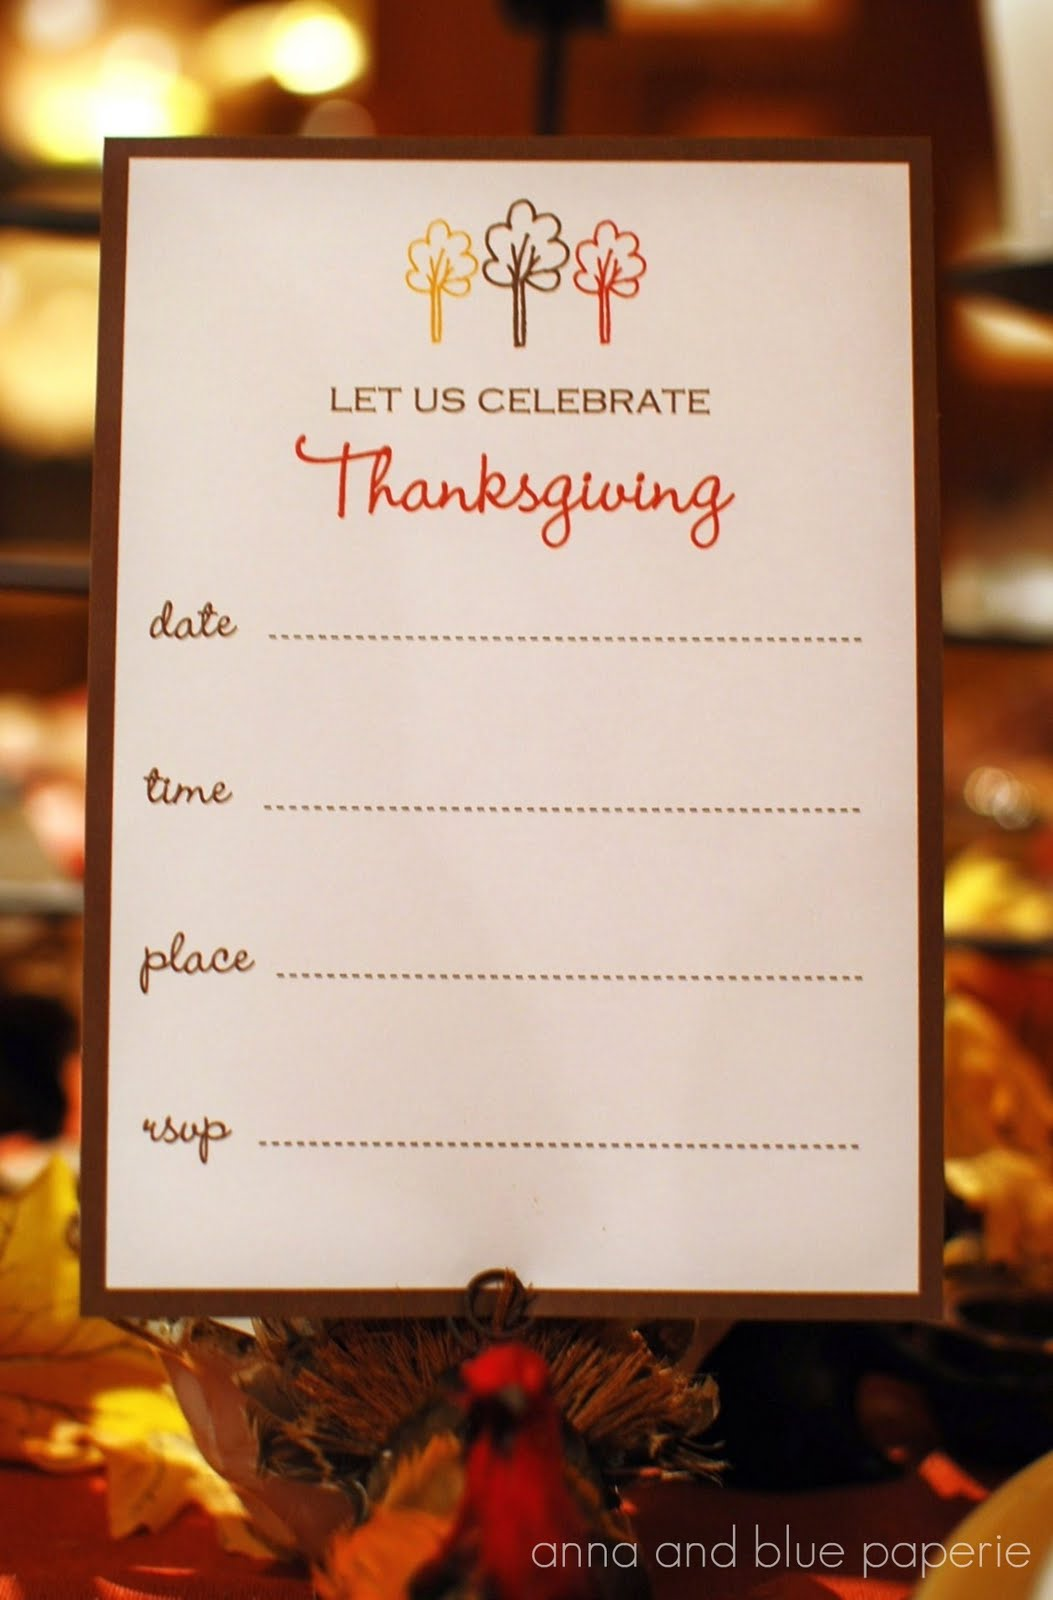 Anna And Blue Paperie Free Printables Celebrate Thanksgiving Printable Collection